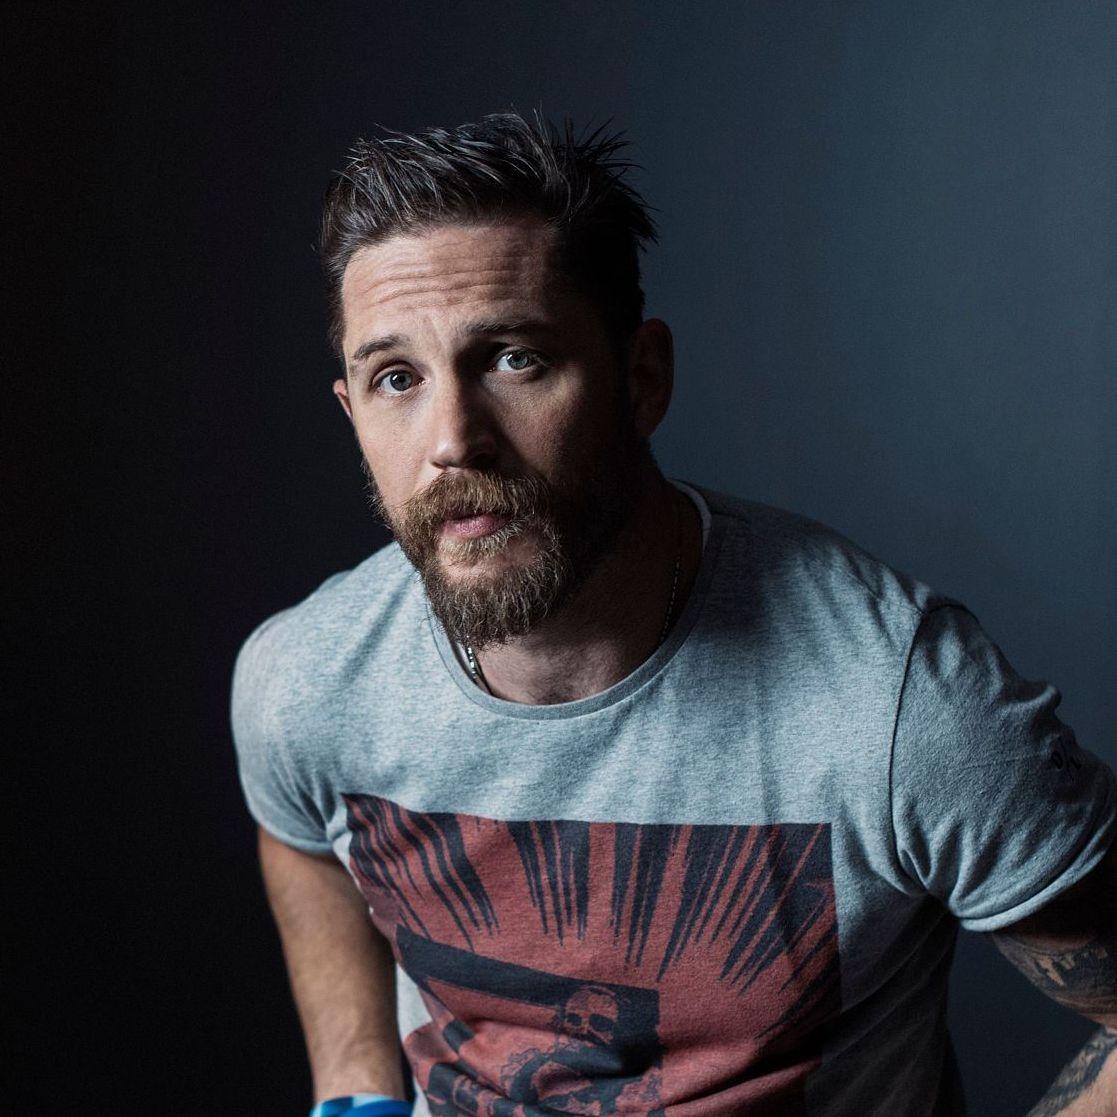 Tom Hardy #313626 Wallpapers High Quality | Download Free